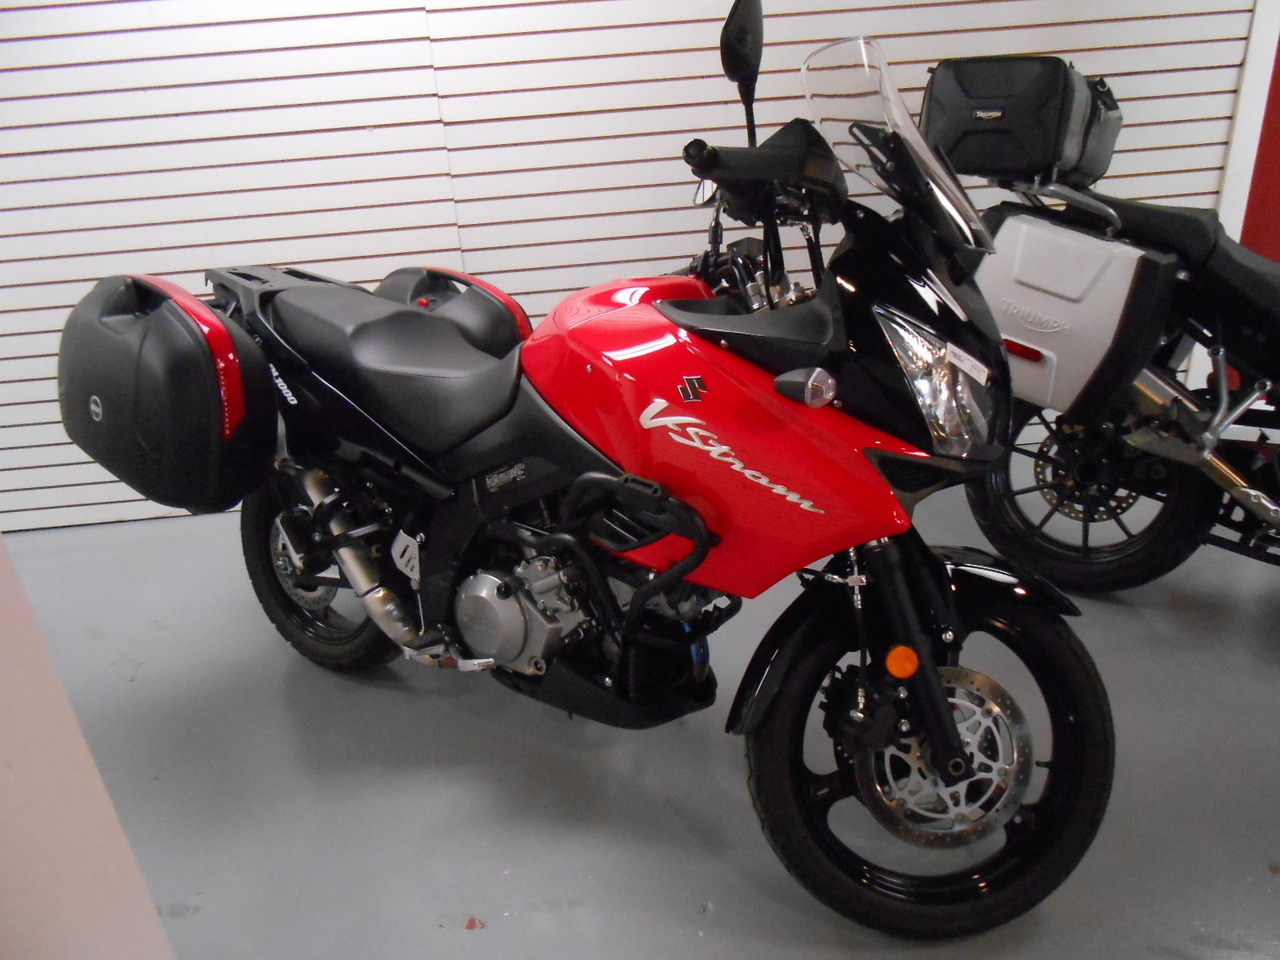 2012 suzuki dl1000 v strom 1000 abs motorcycle from asheville nc today sale 7 800. Black Bedroom Furniture Sets. Home Design Ideas